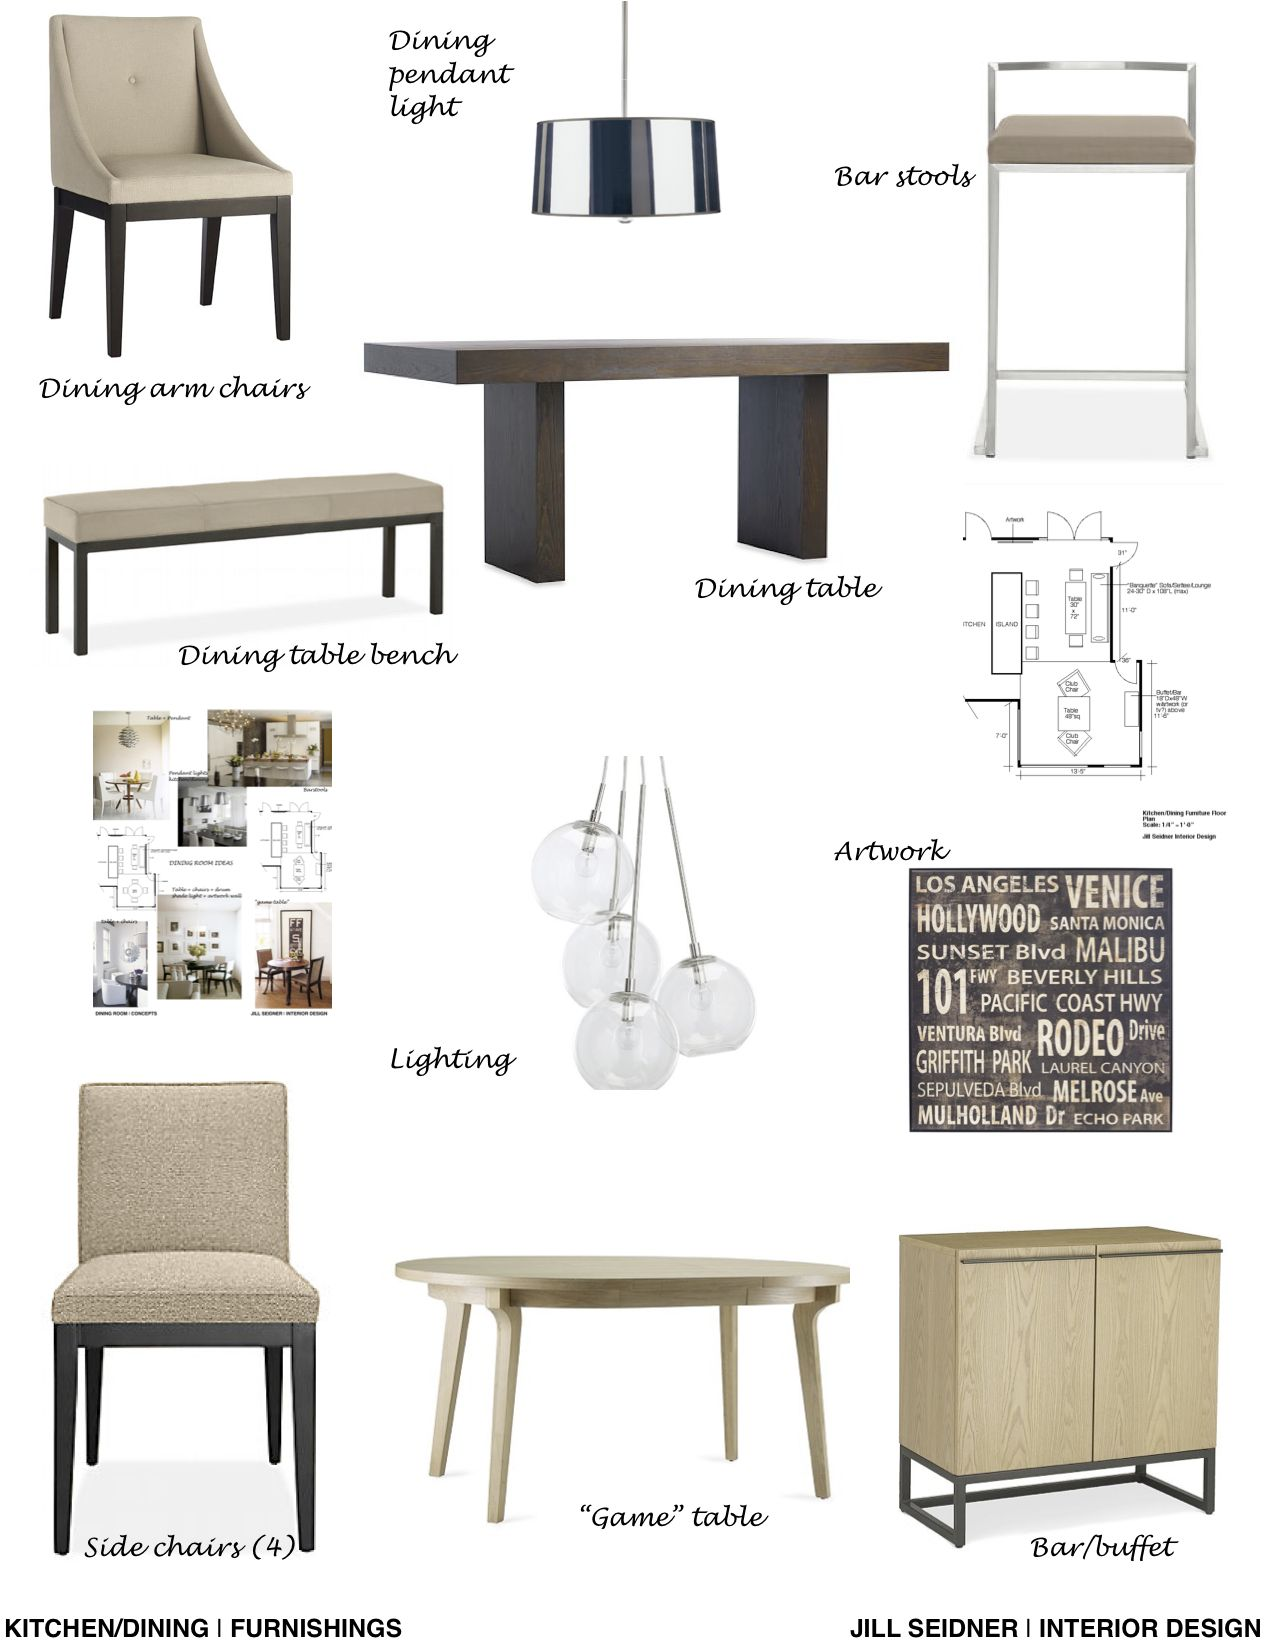 Furnishings Concept Board For A Dining Area Interior Design